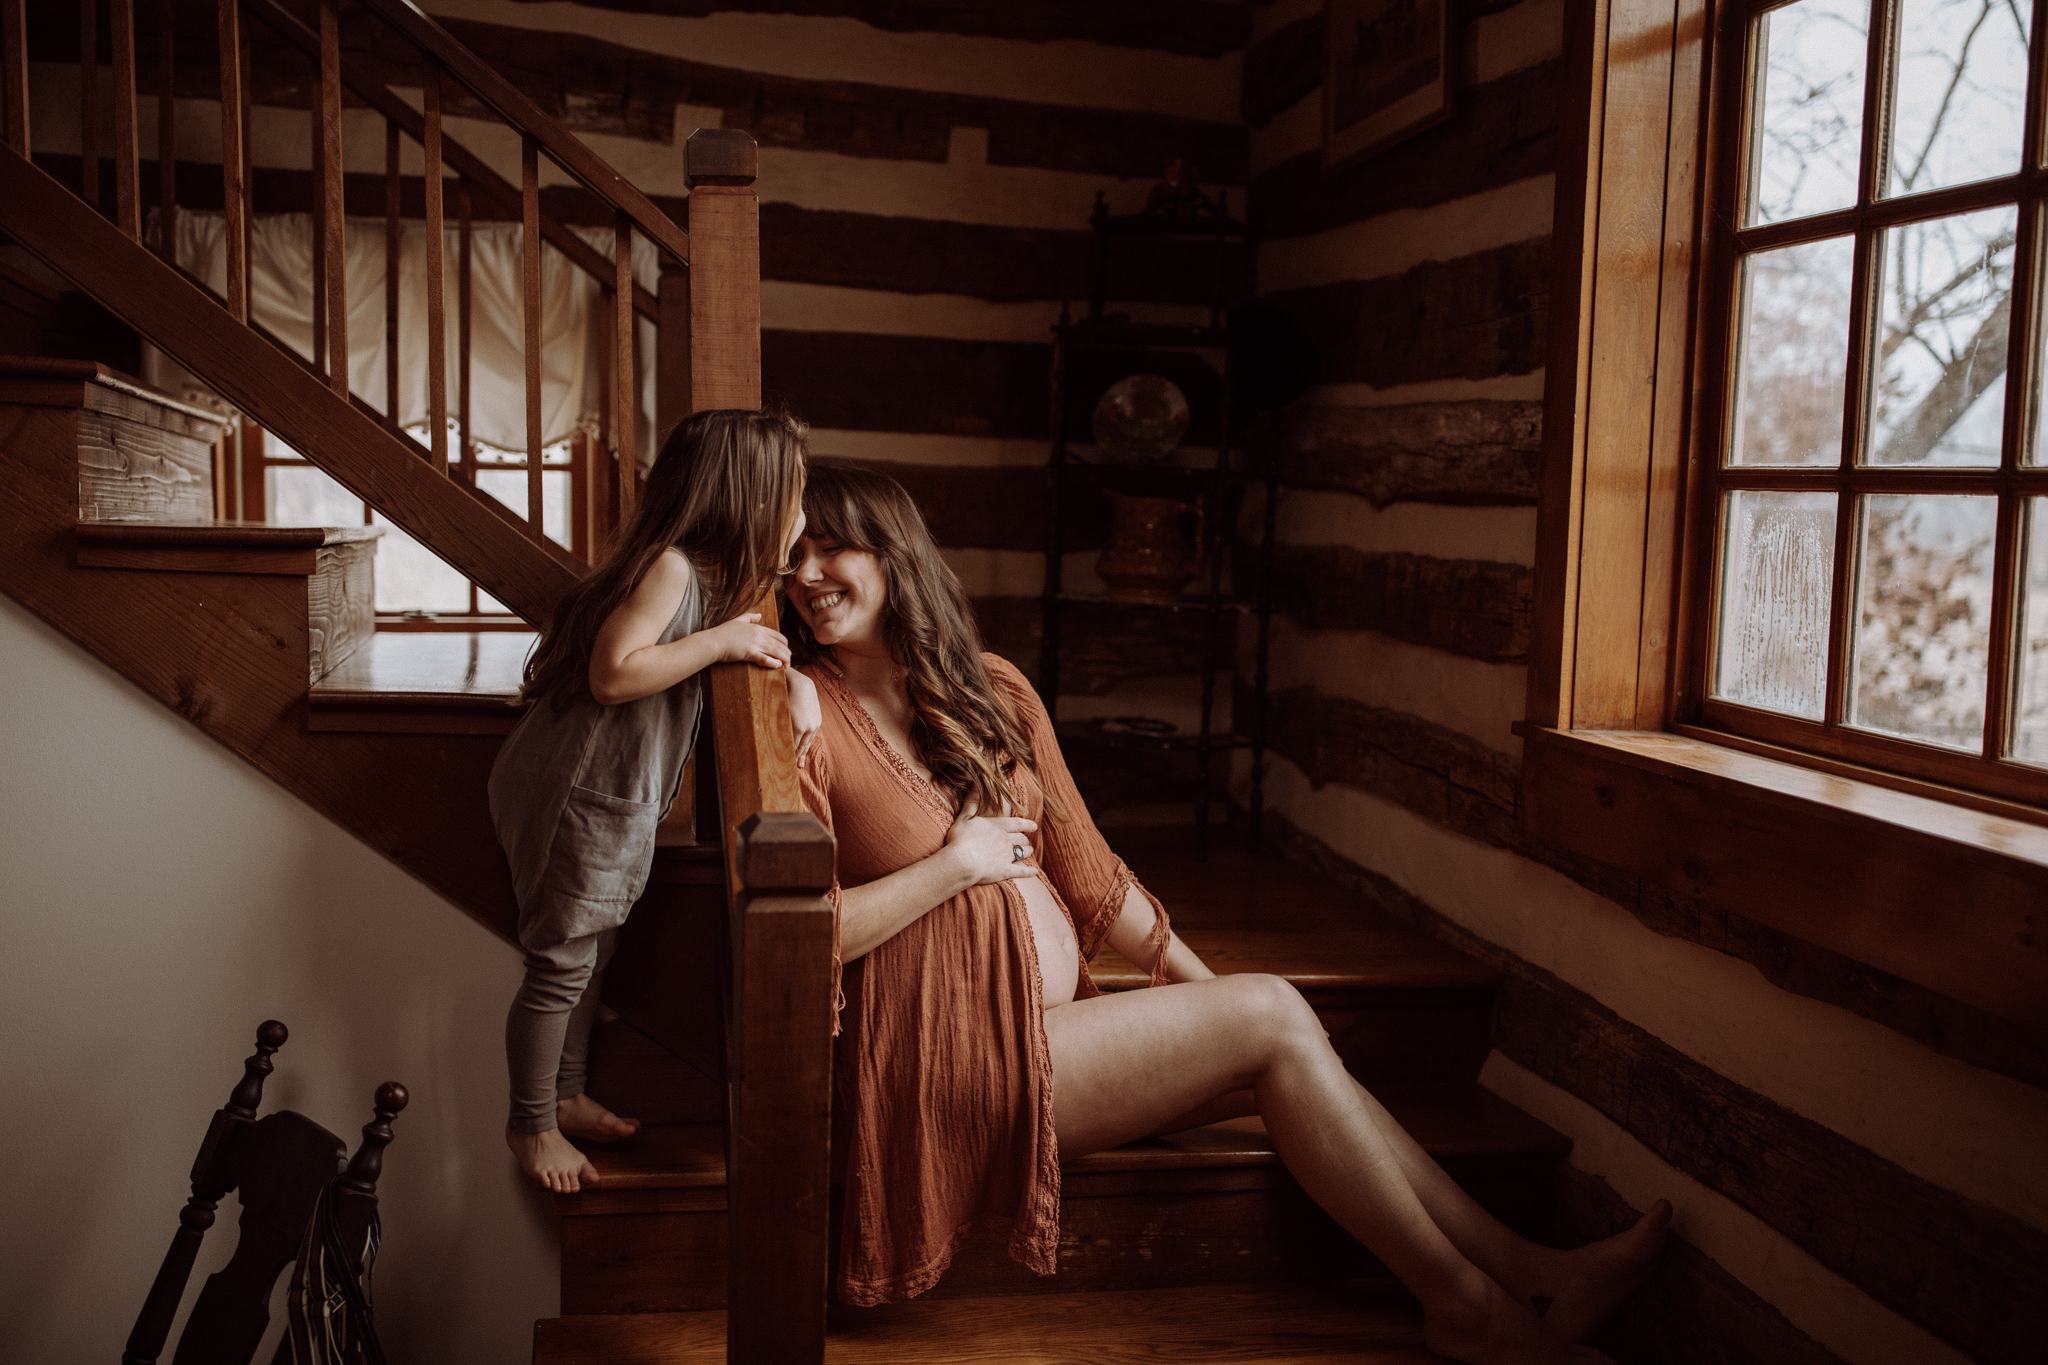 A photo of a pregnant mom who sits on wooden stairs and gets a kiss from a kid.